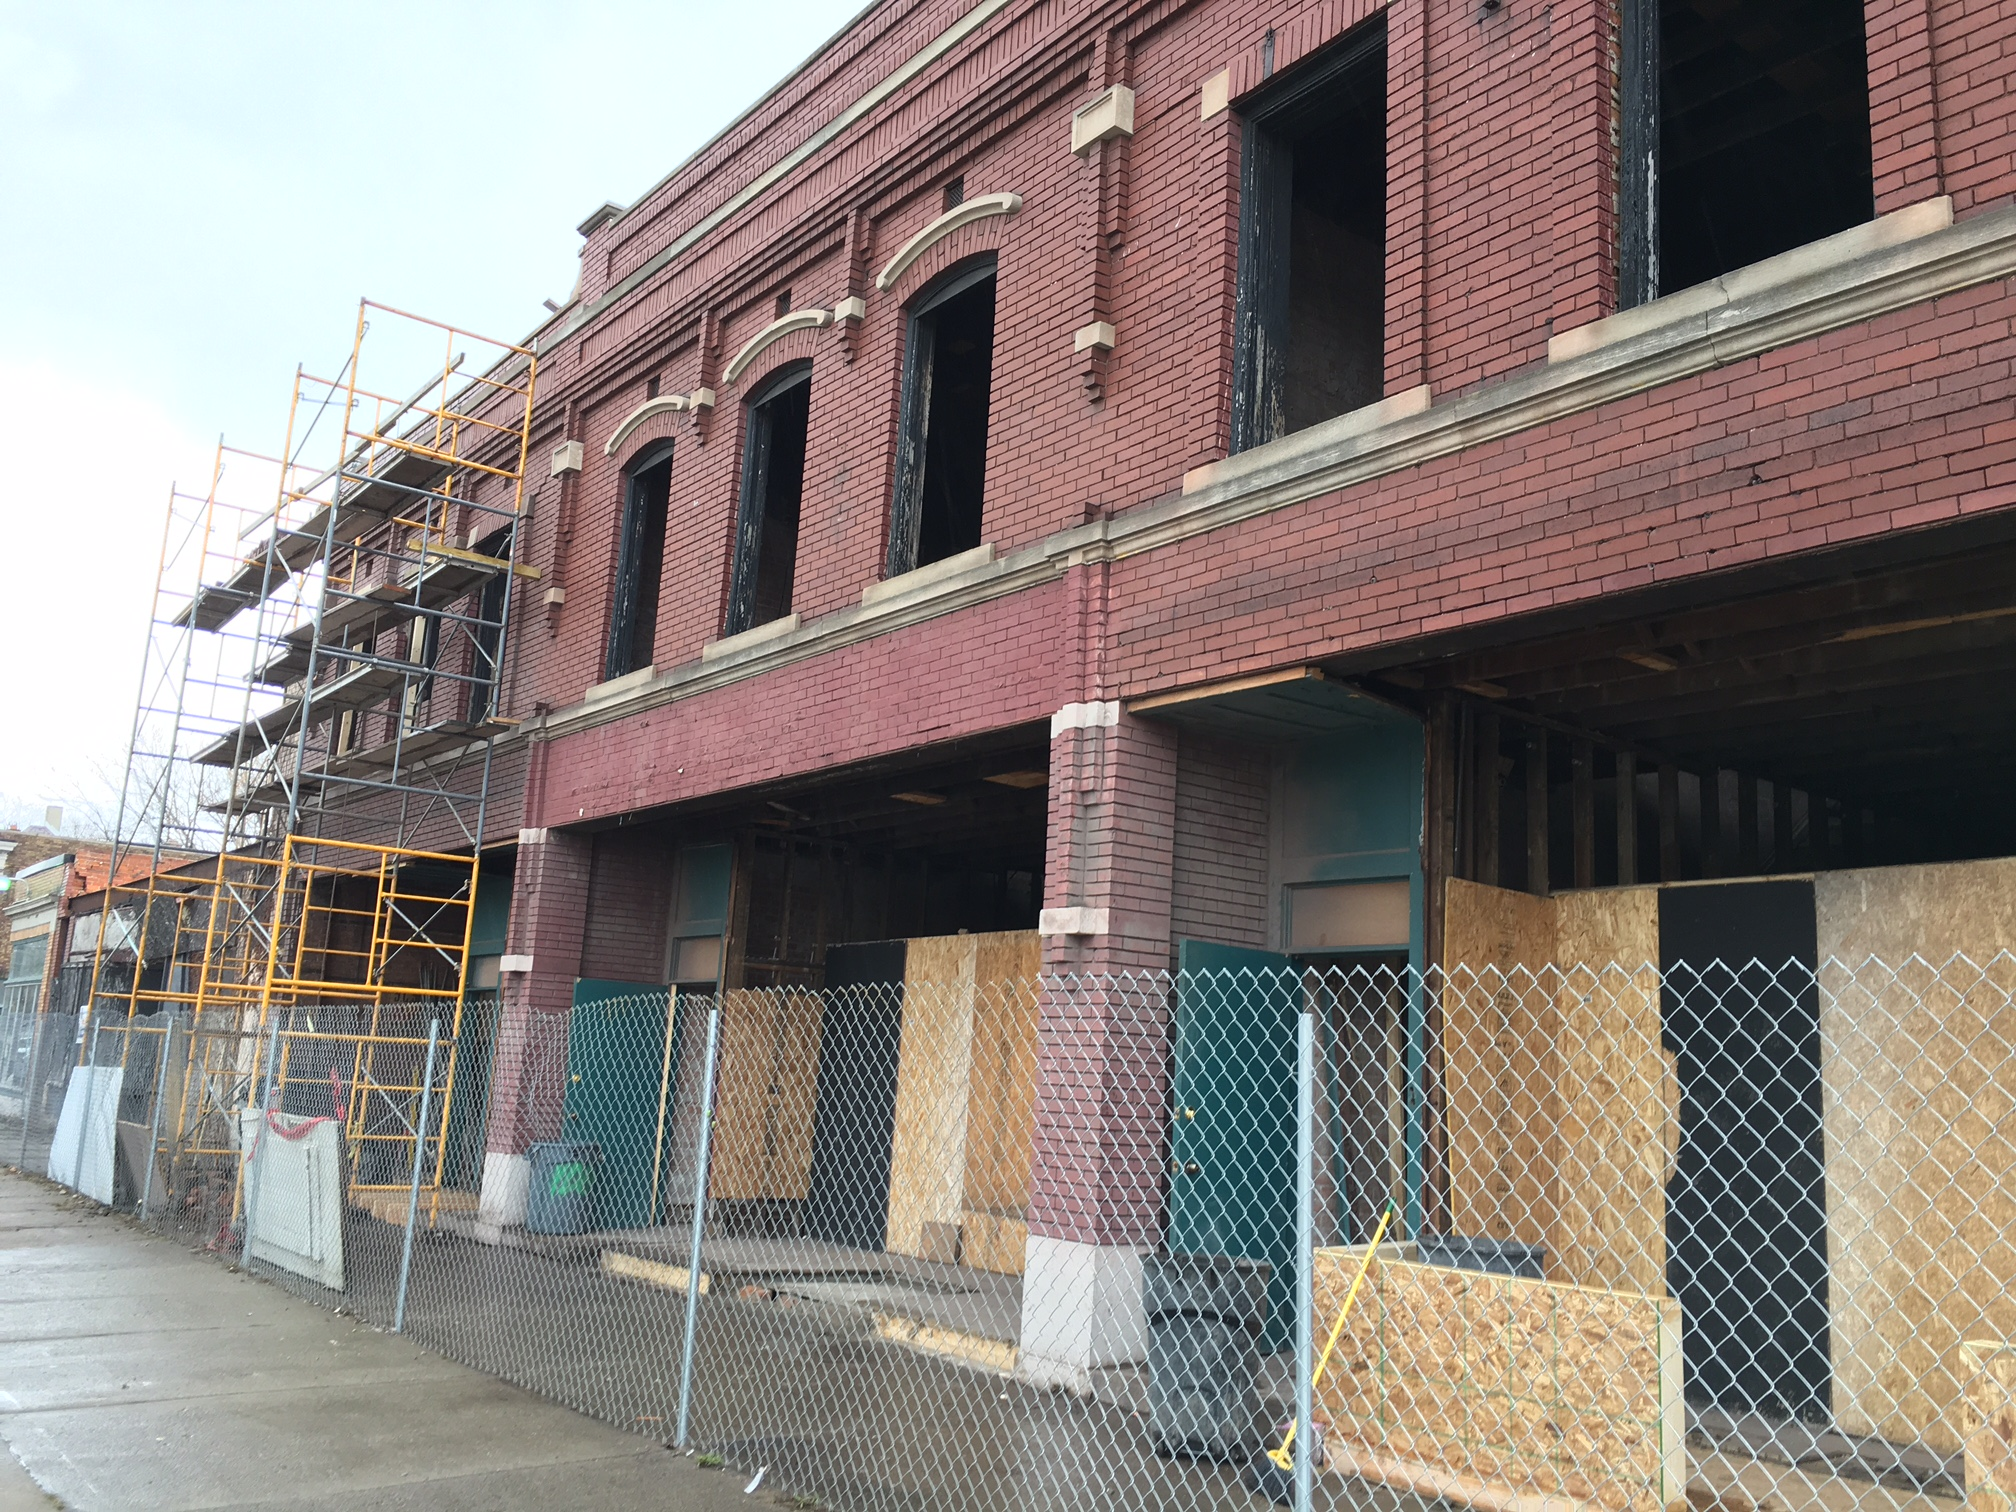 Geiger Eat Shop will occupy the ground floor and basement levels of a building on Kercheval near Sister Pie.